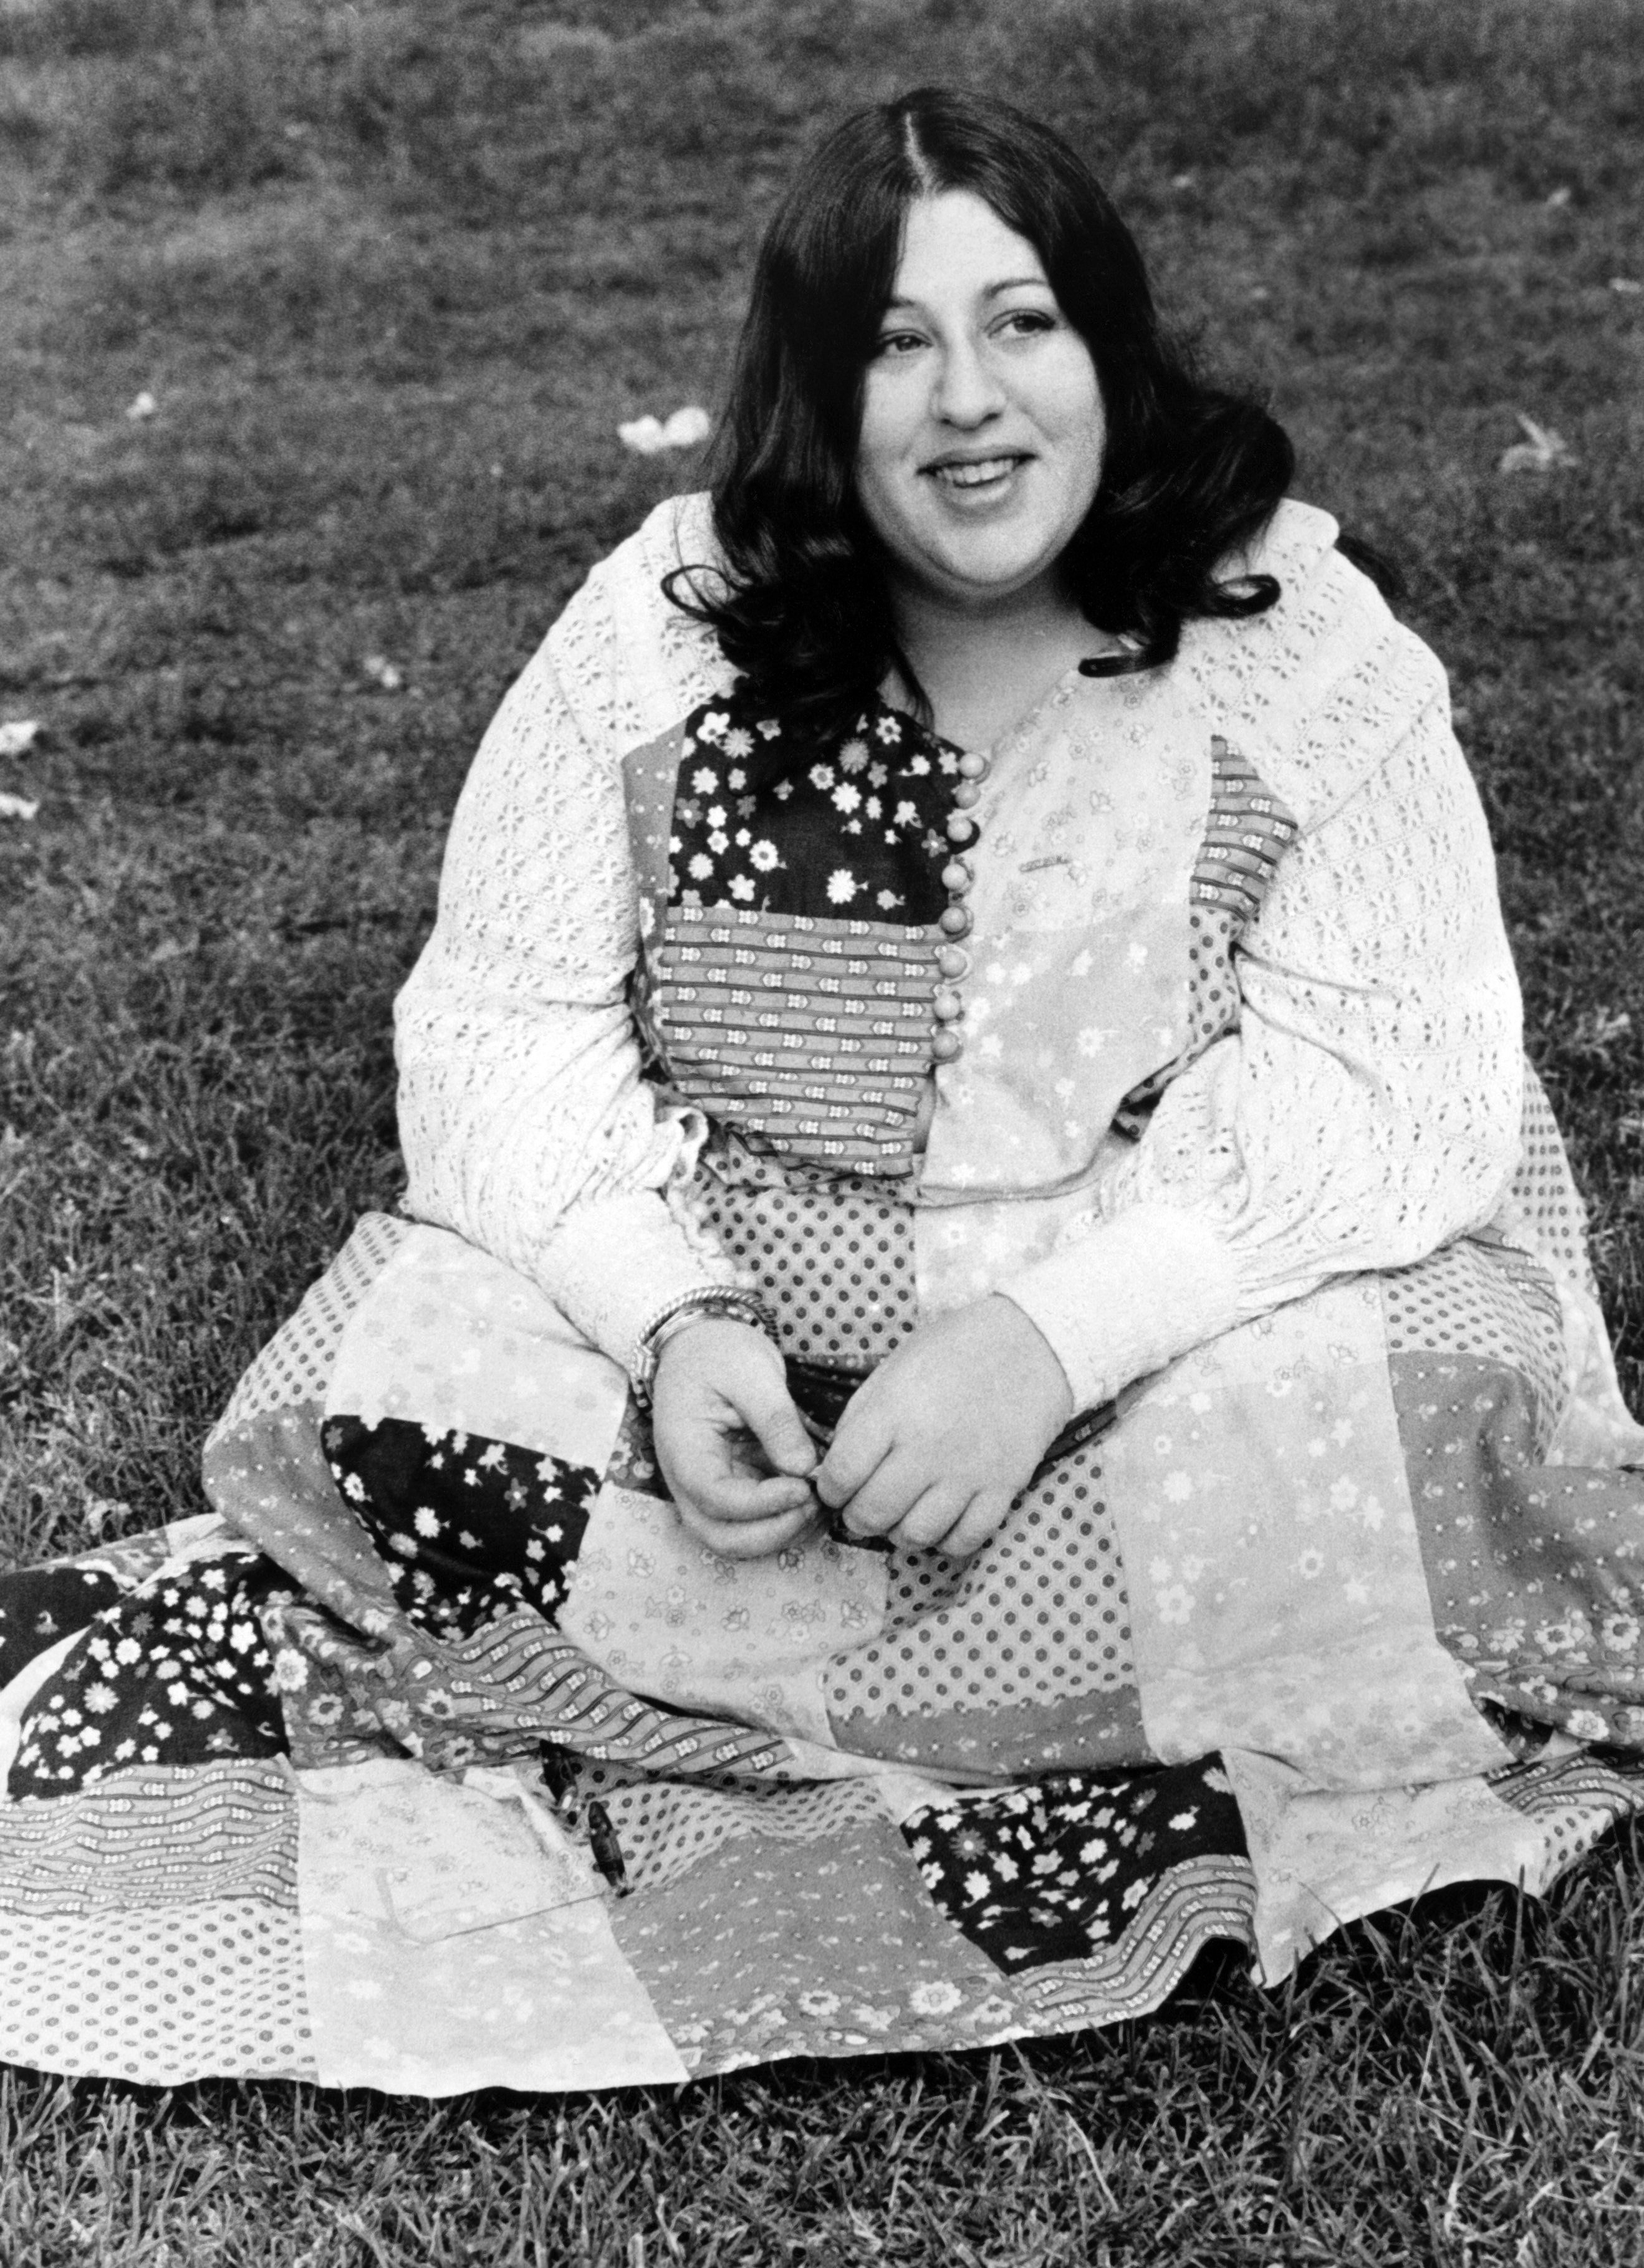 Mama Cass Elliot poses for a portrat for her solo career in 1968 in Los Angeles. | Photo by Michael Ochs Archives/Getty Images